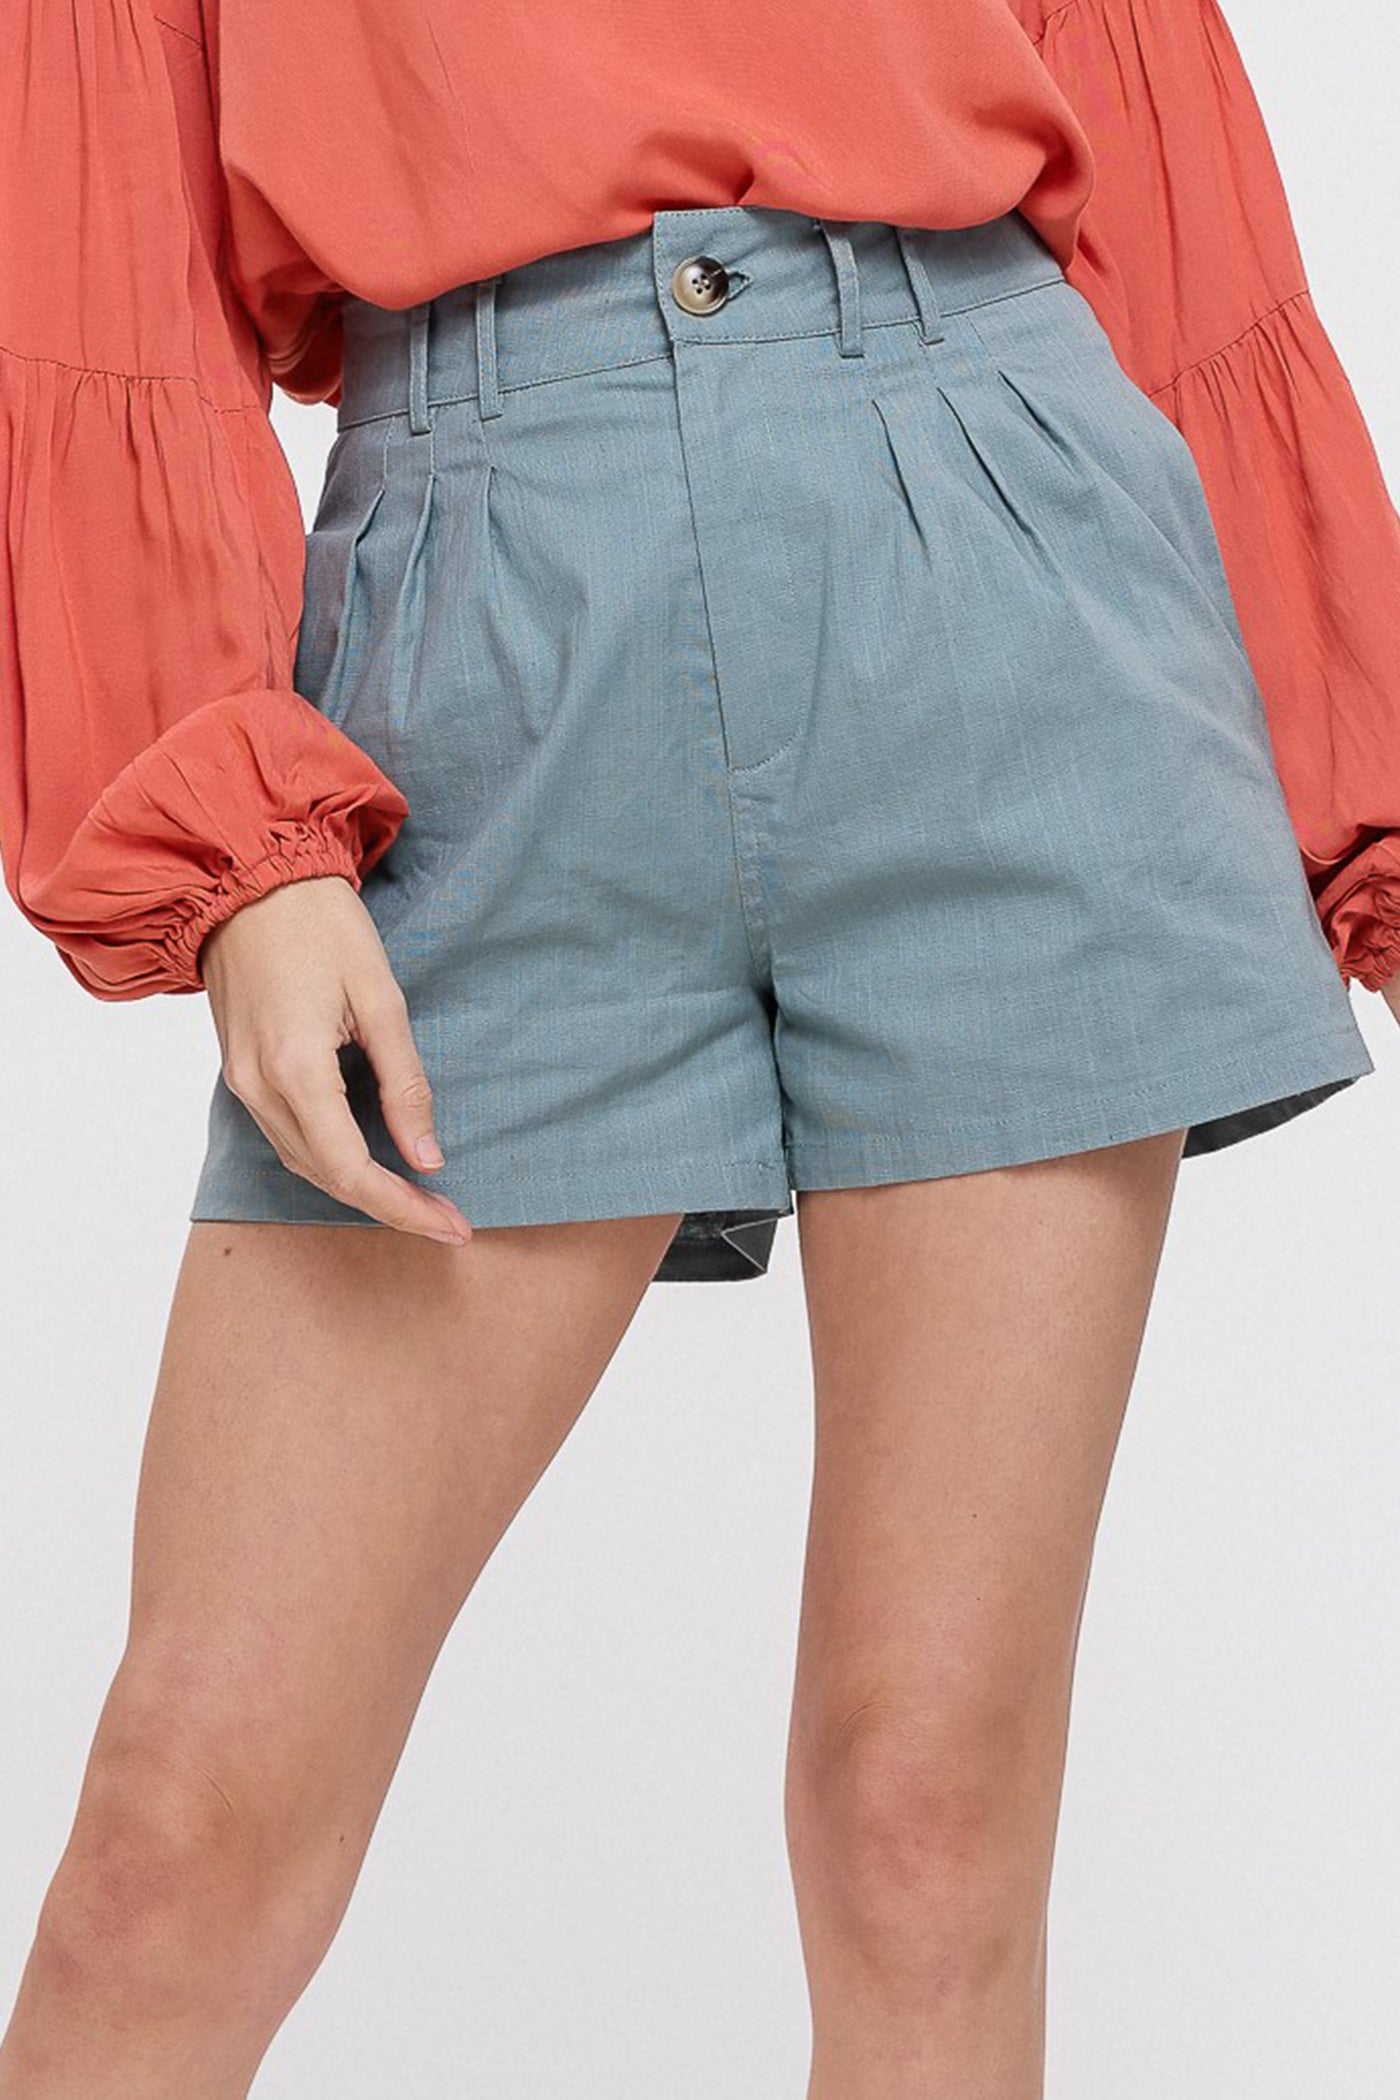 Sweetest Thing Shorts by For Good